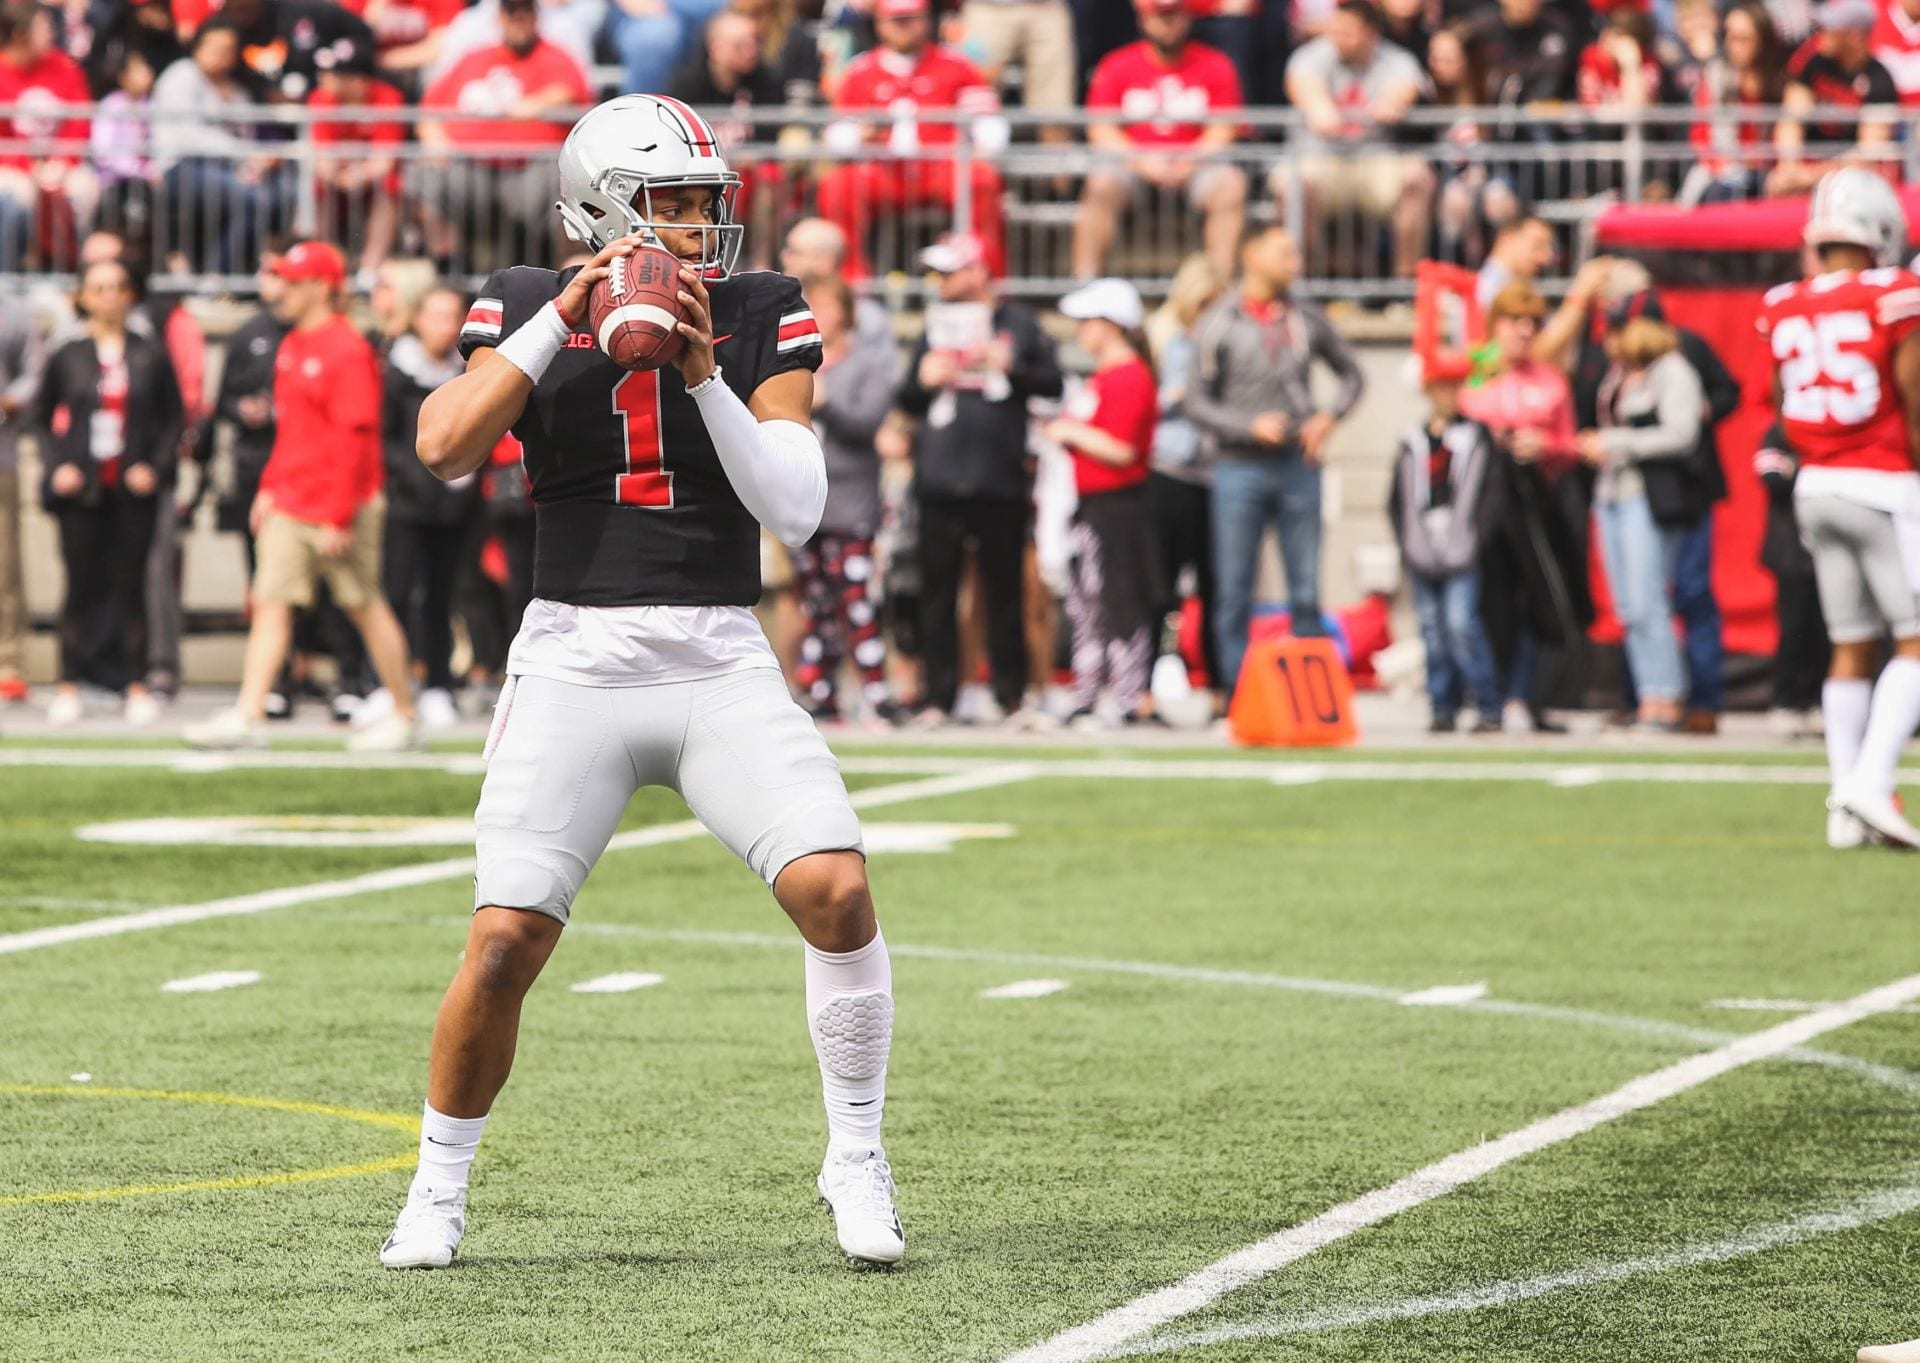 Football Justin Fields Has only Scratched The Surface With Ohio State Spring Game The Lantern